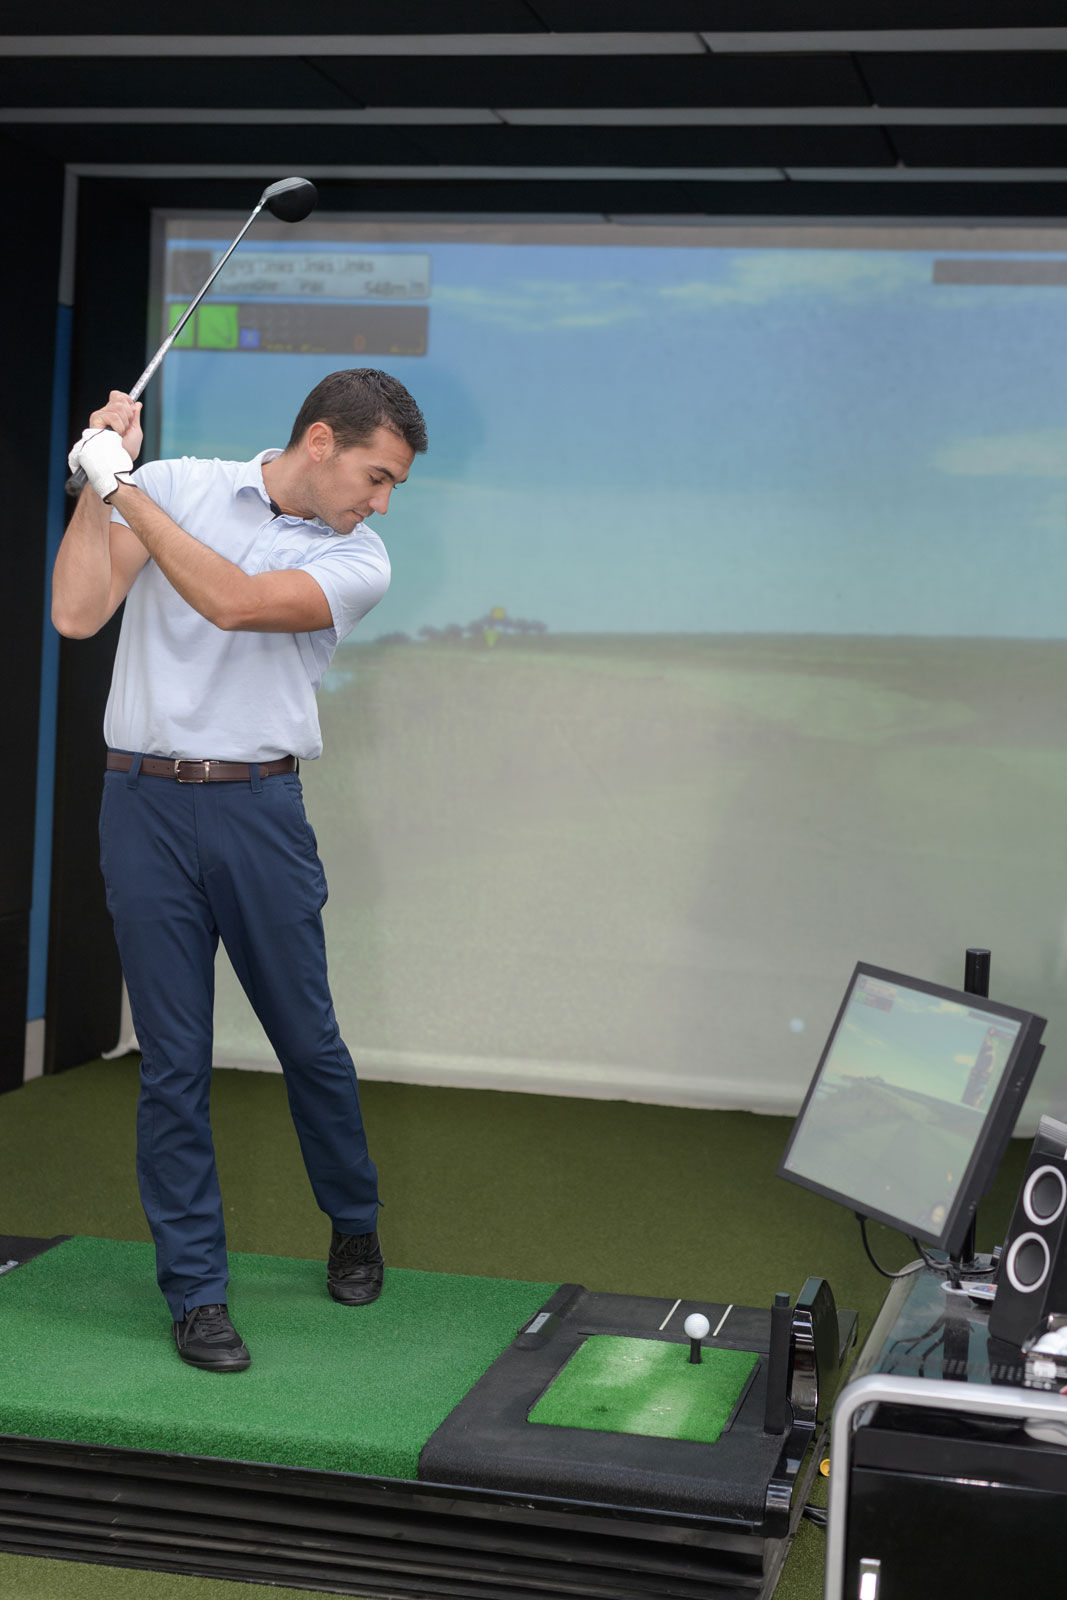 Practice your swing at an indoor golf simulator.​ Great for the chillier months where you still want to keep your skills sharp!